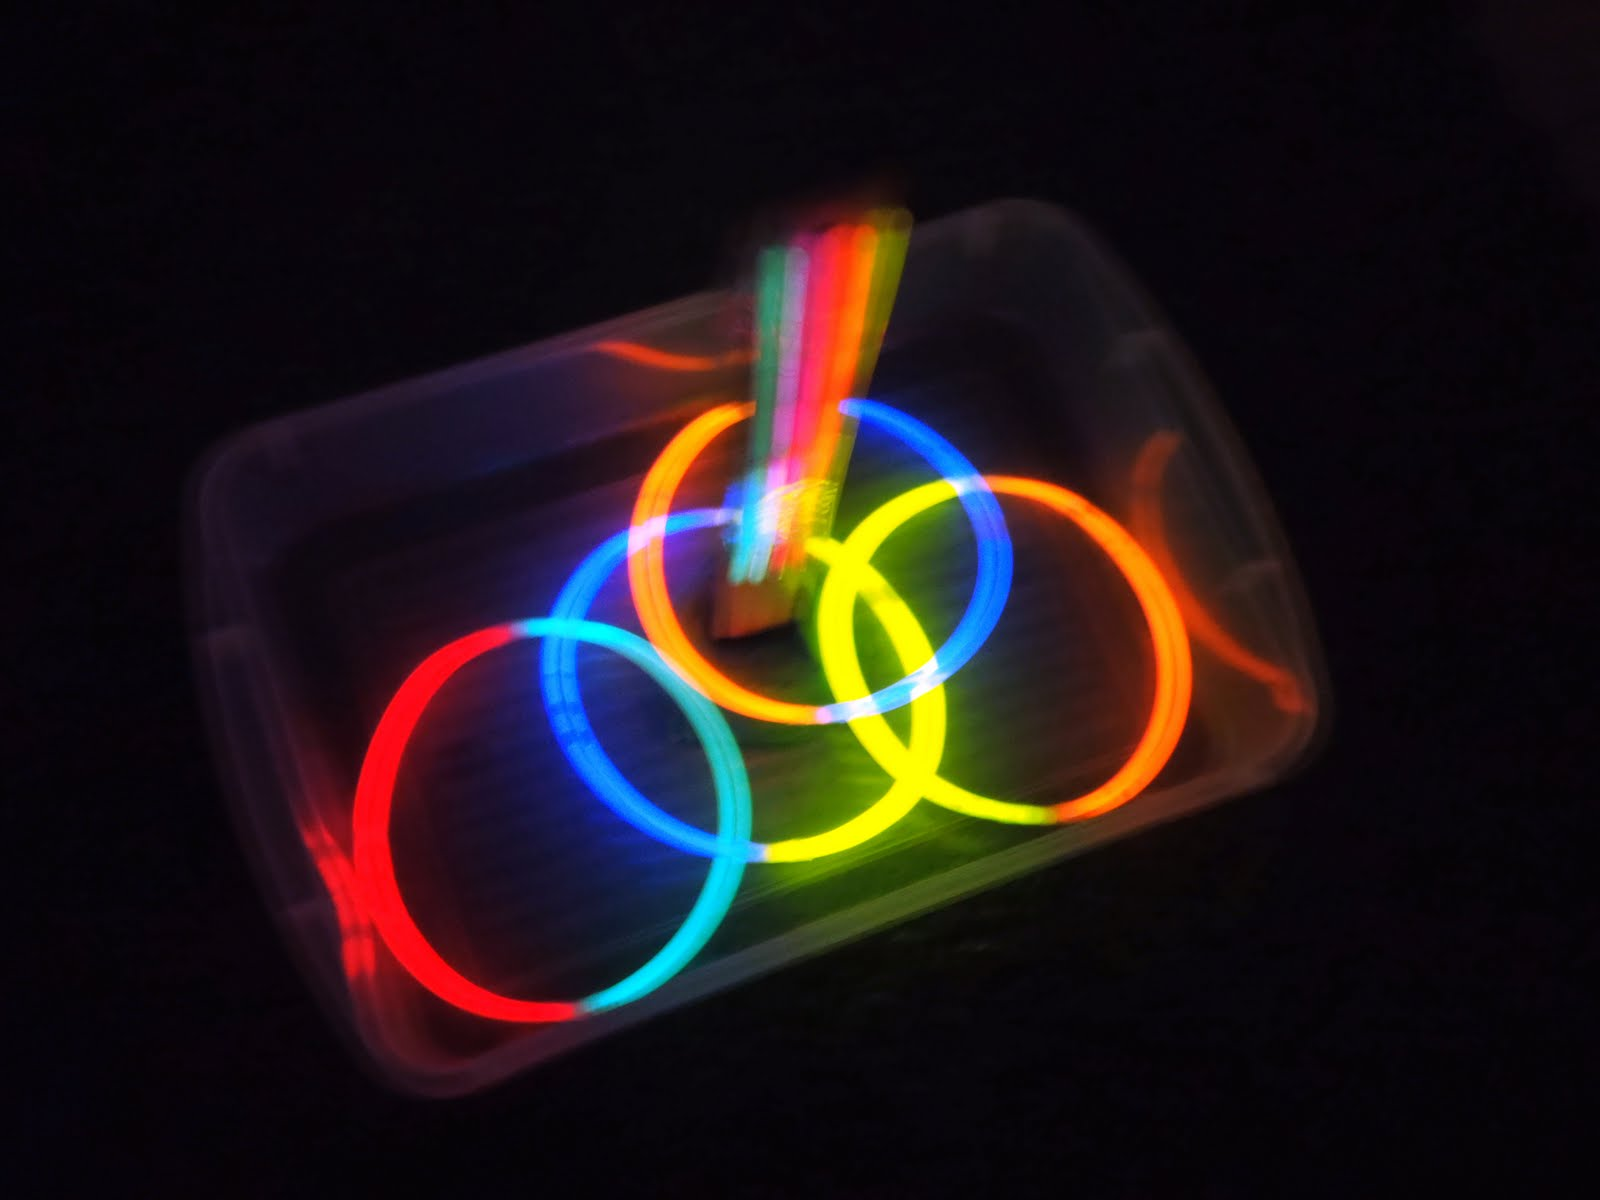 A Little Learning For Two: Glow In The Dark Ring Toss on glow stick craft ideas, glow sticks in water, glow stick outdoor ideas, fun with glow sticks ideas, glow stick costume ideas, glow stick game ideas, glow stick decorating ideas, glow sticks in balloons, glow sticks in the dark, glow stick centerpiece ideas, glow stick party decoration ideas, led lighting ideas, 10 awesome glow stick ideas, glow in the dark ideas, glow sticks cool,